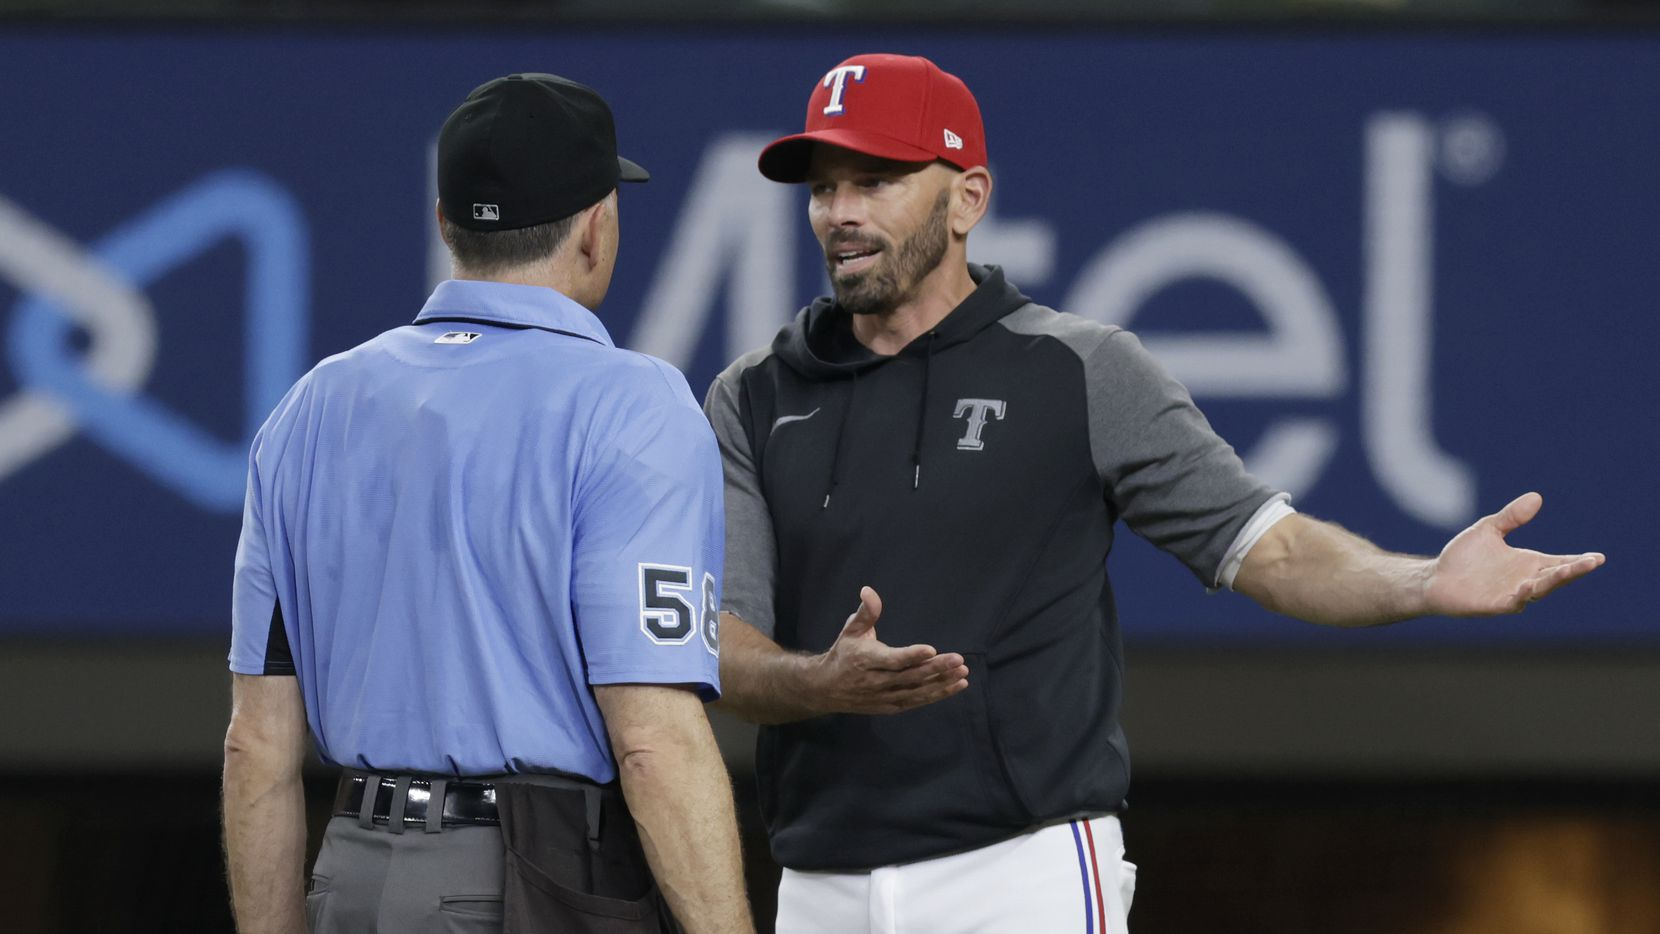 Texas Rangers manager Chris Woodward argues a call with home plate umpire Dan Iassogna during the sixth inning of a baseball game against the Oakland Athletics in Arlington, Monday, June 21, 2021. (Brandon Wade/Special Contributor)